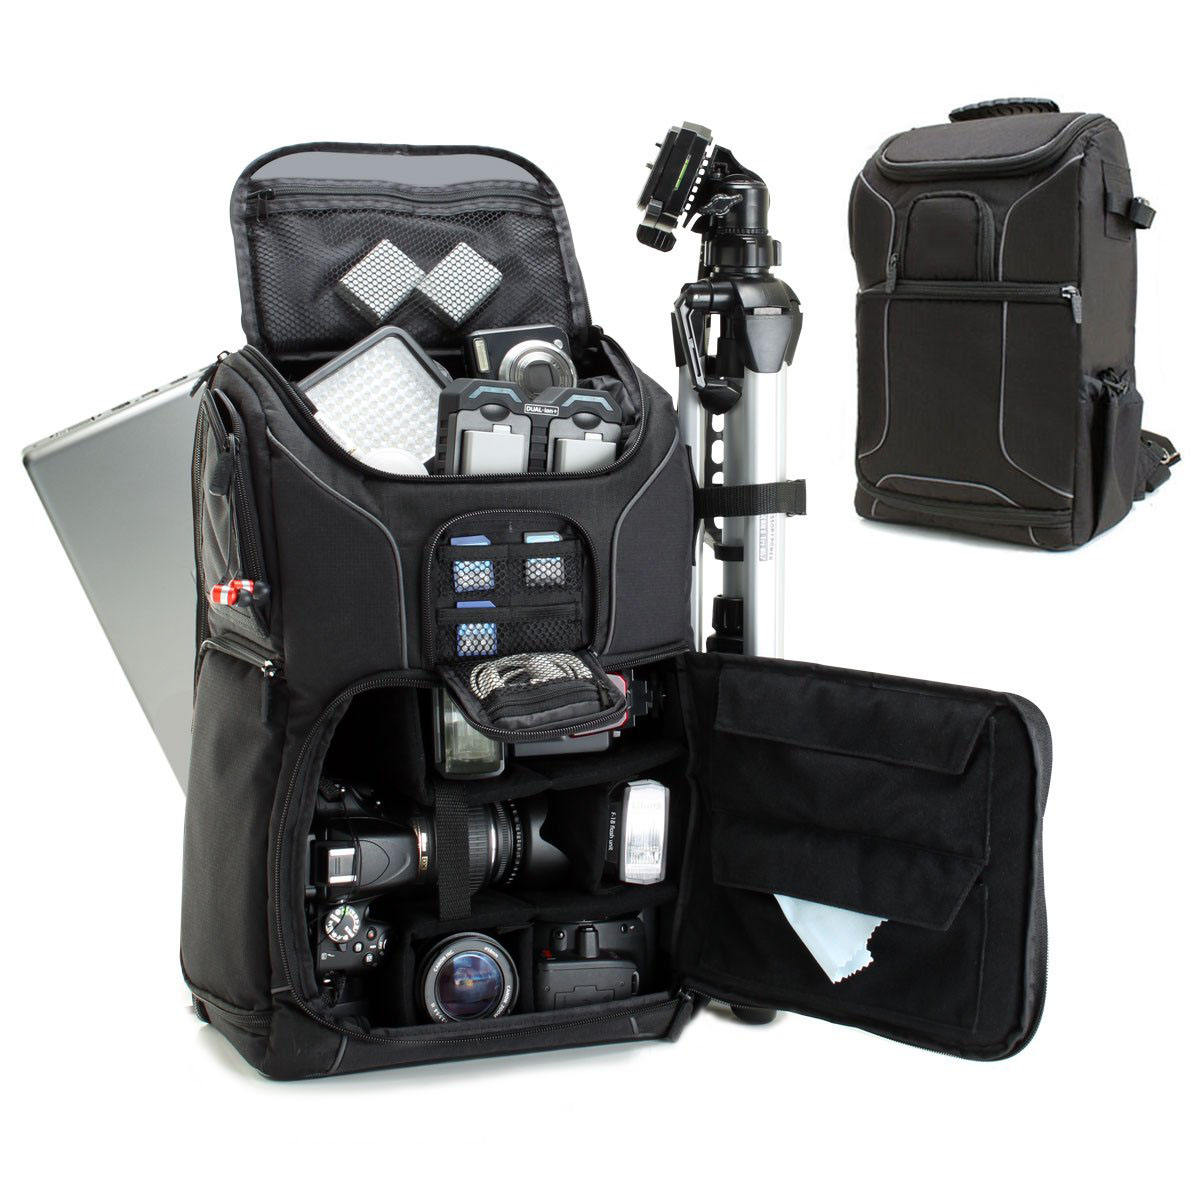 BSCI factory manufacture Professional Dslr Camera Bag Travel digital waterproof camera backpack